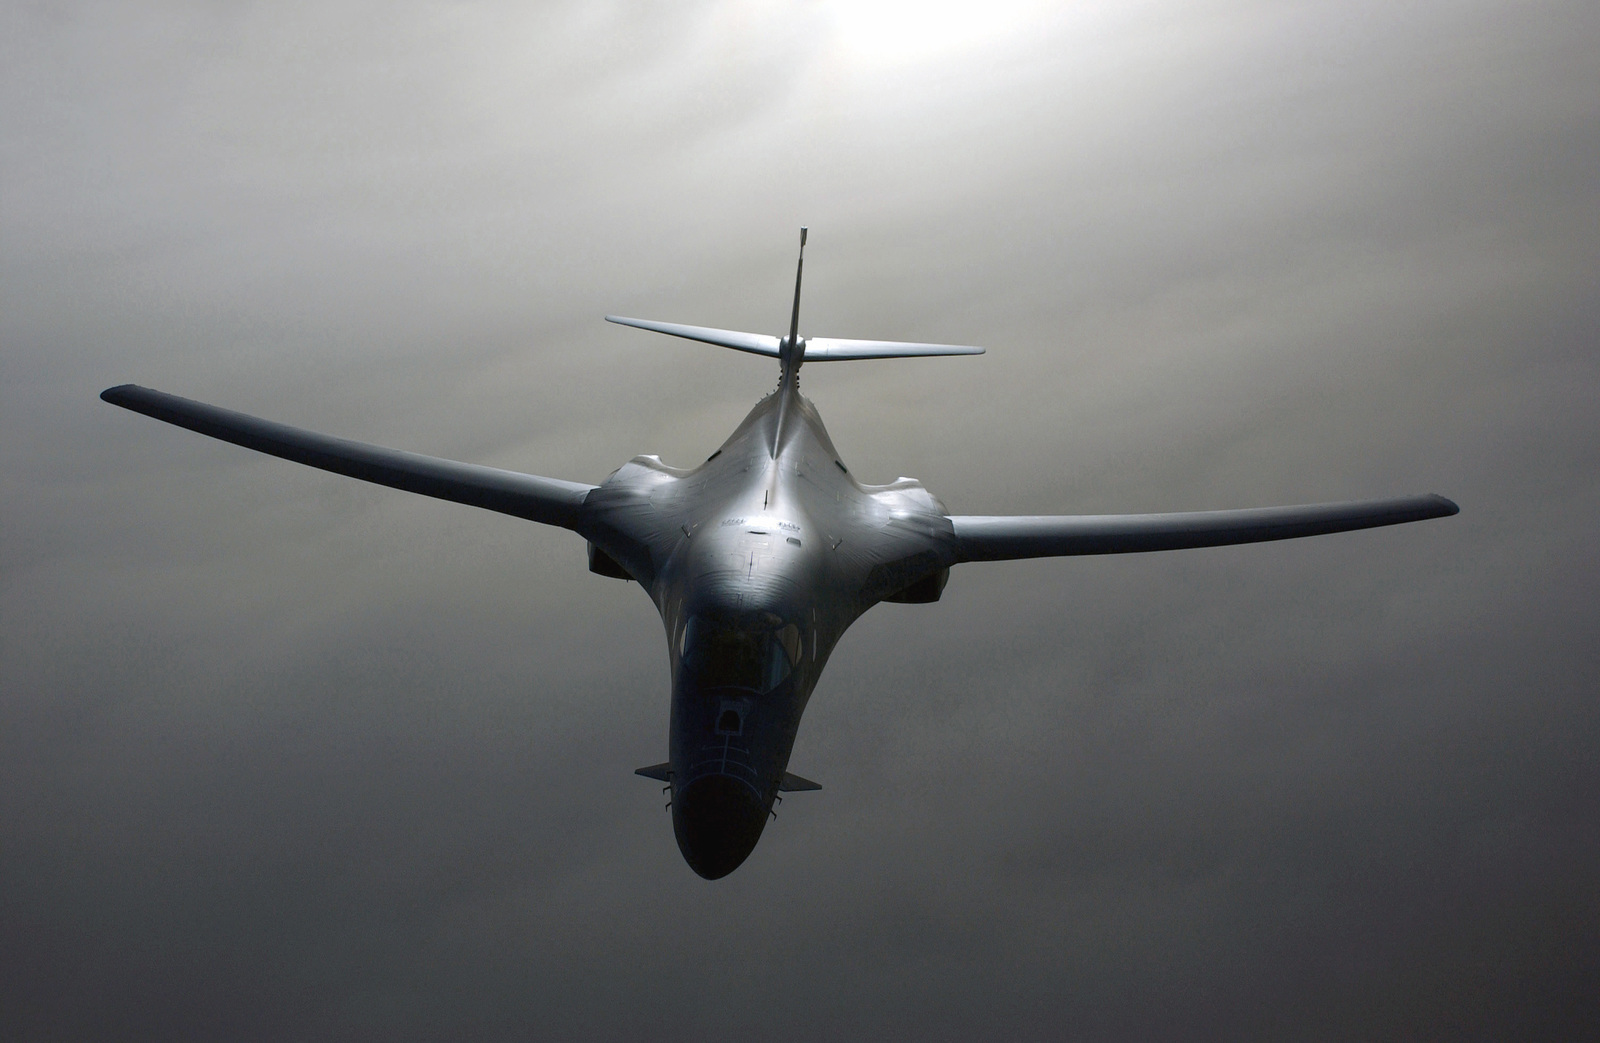 A US Air Force (USAF) B-1B Lancer aircraft from the 405th Air Expeditionary Wing (AEW), enroute to a mission over Iraq, in support of Operation IRAQI FREEDOM